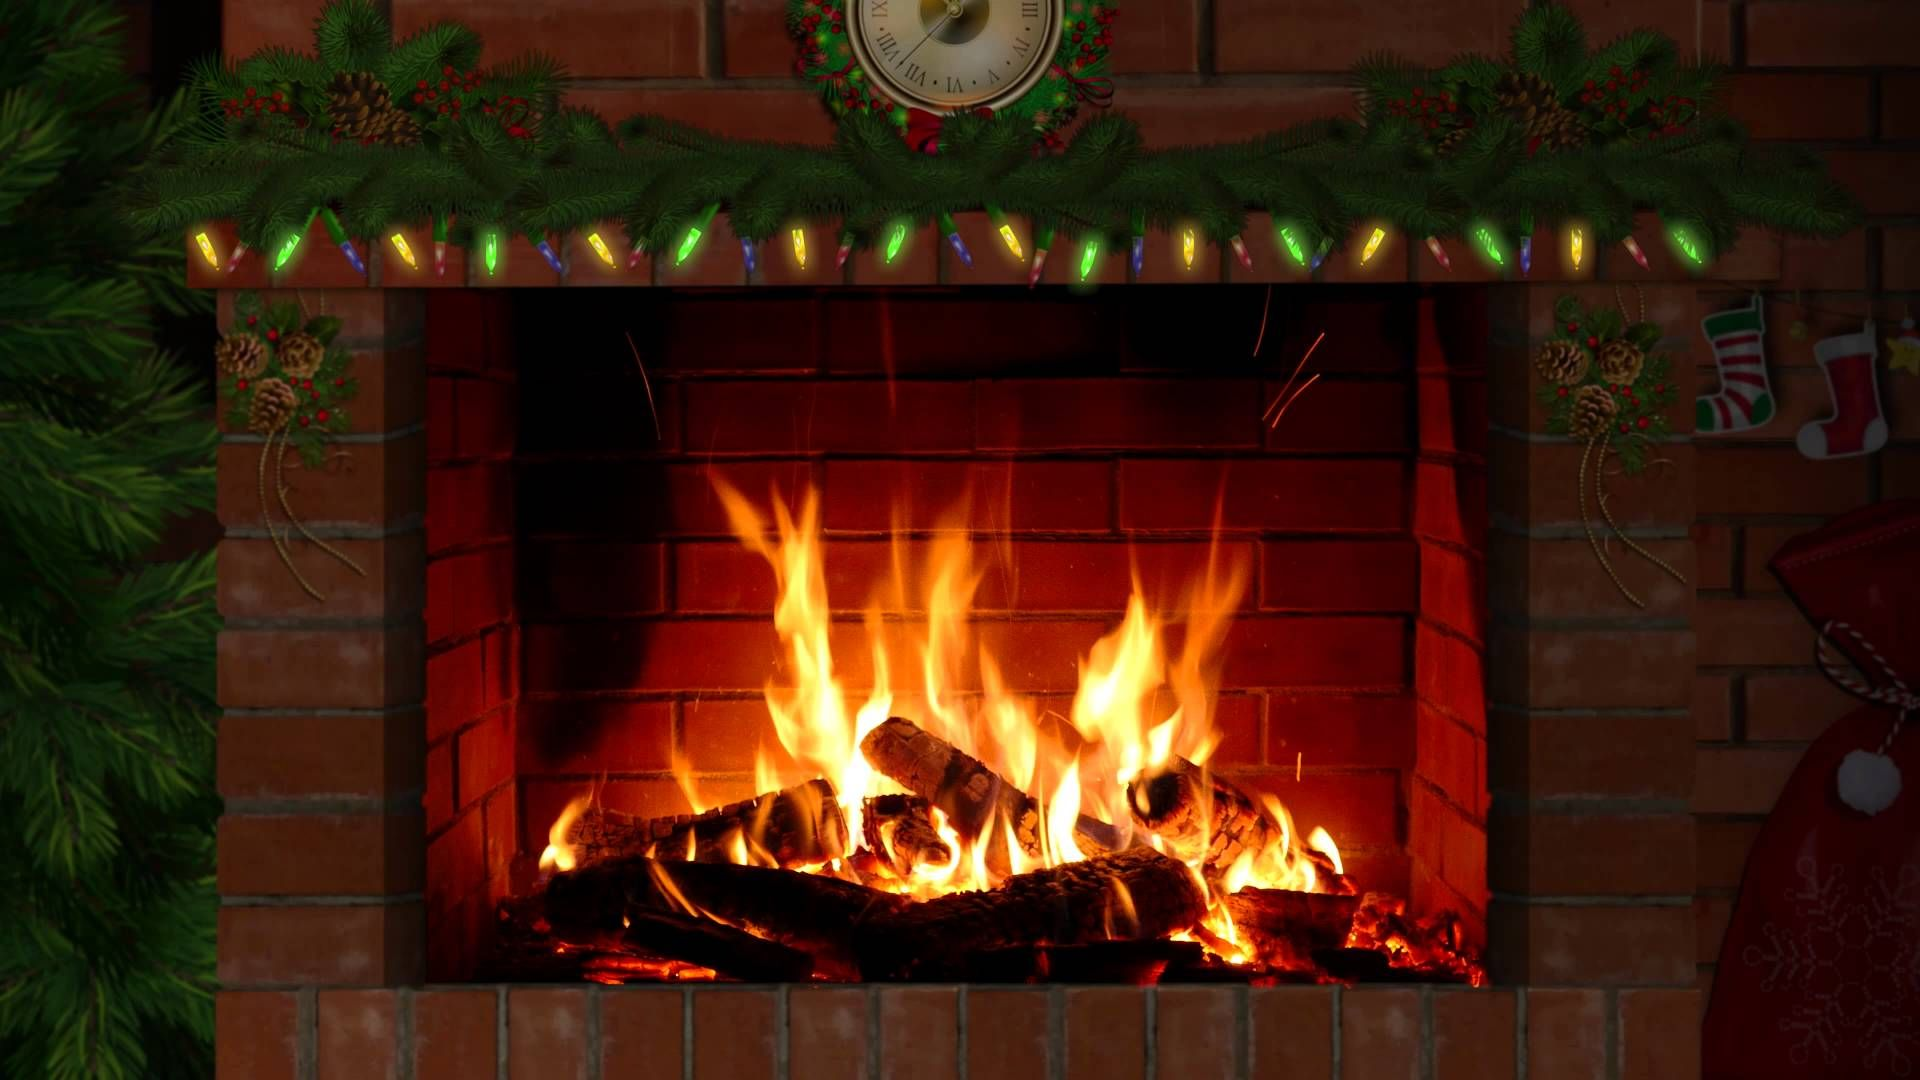 Fireplace With Christmas Music.Fireplace With Christmas Music 3 Hours Fireplace